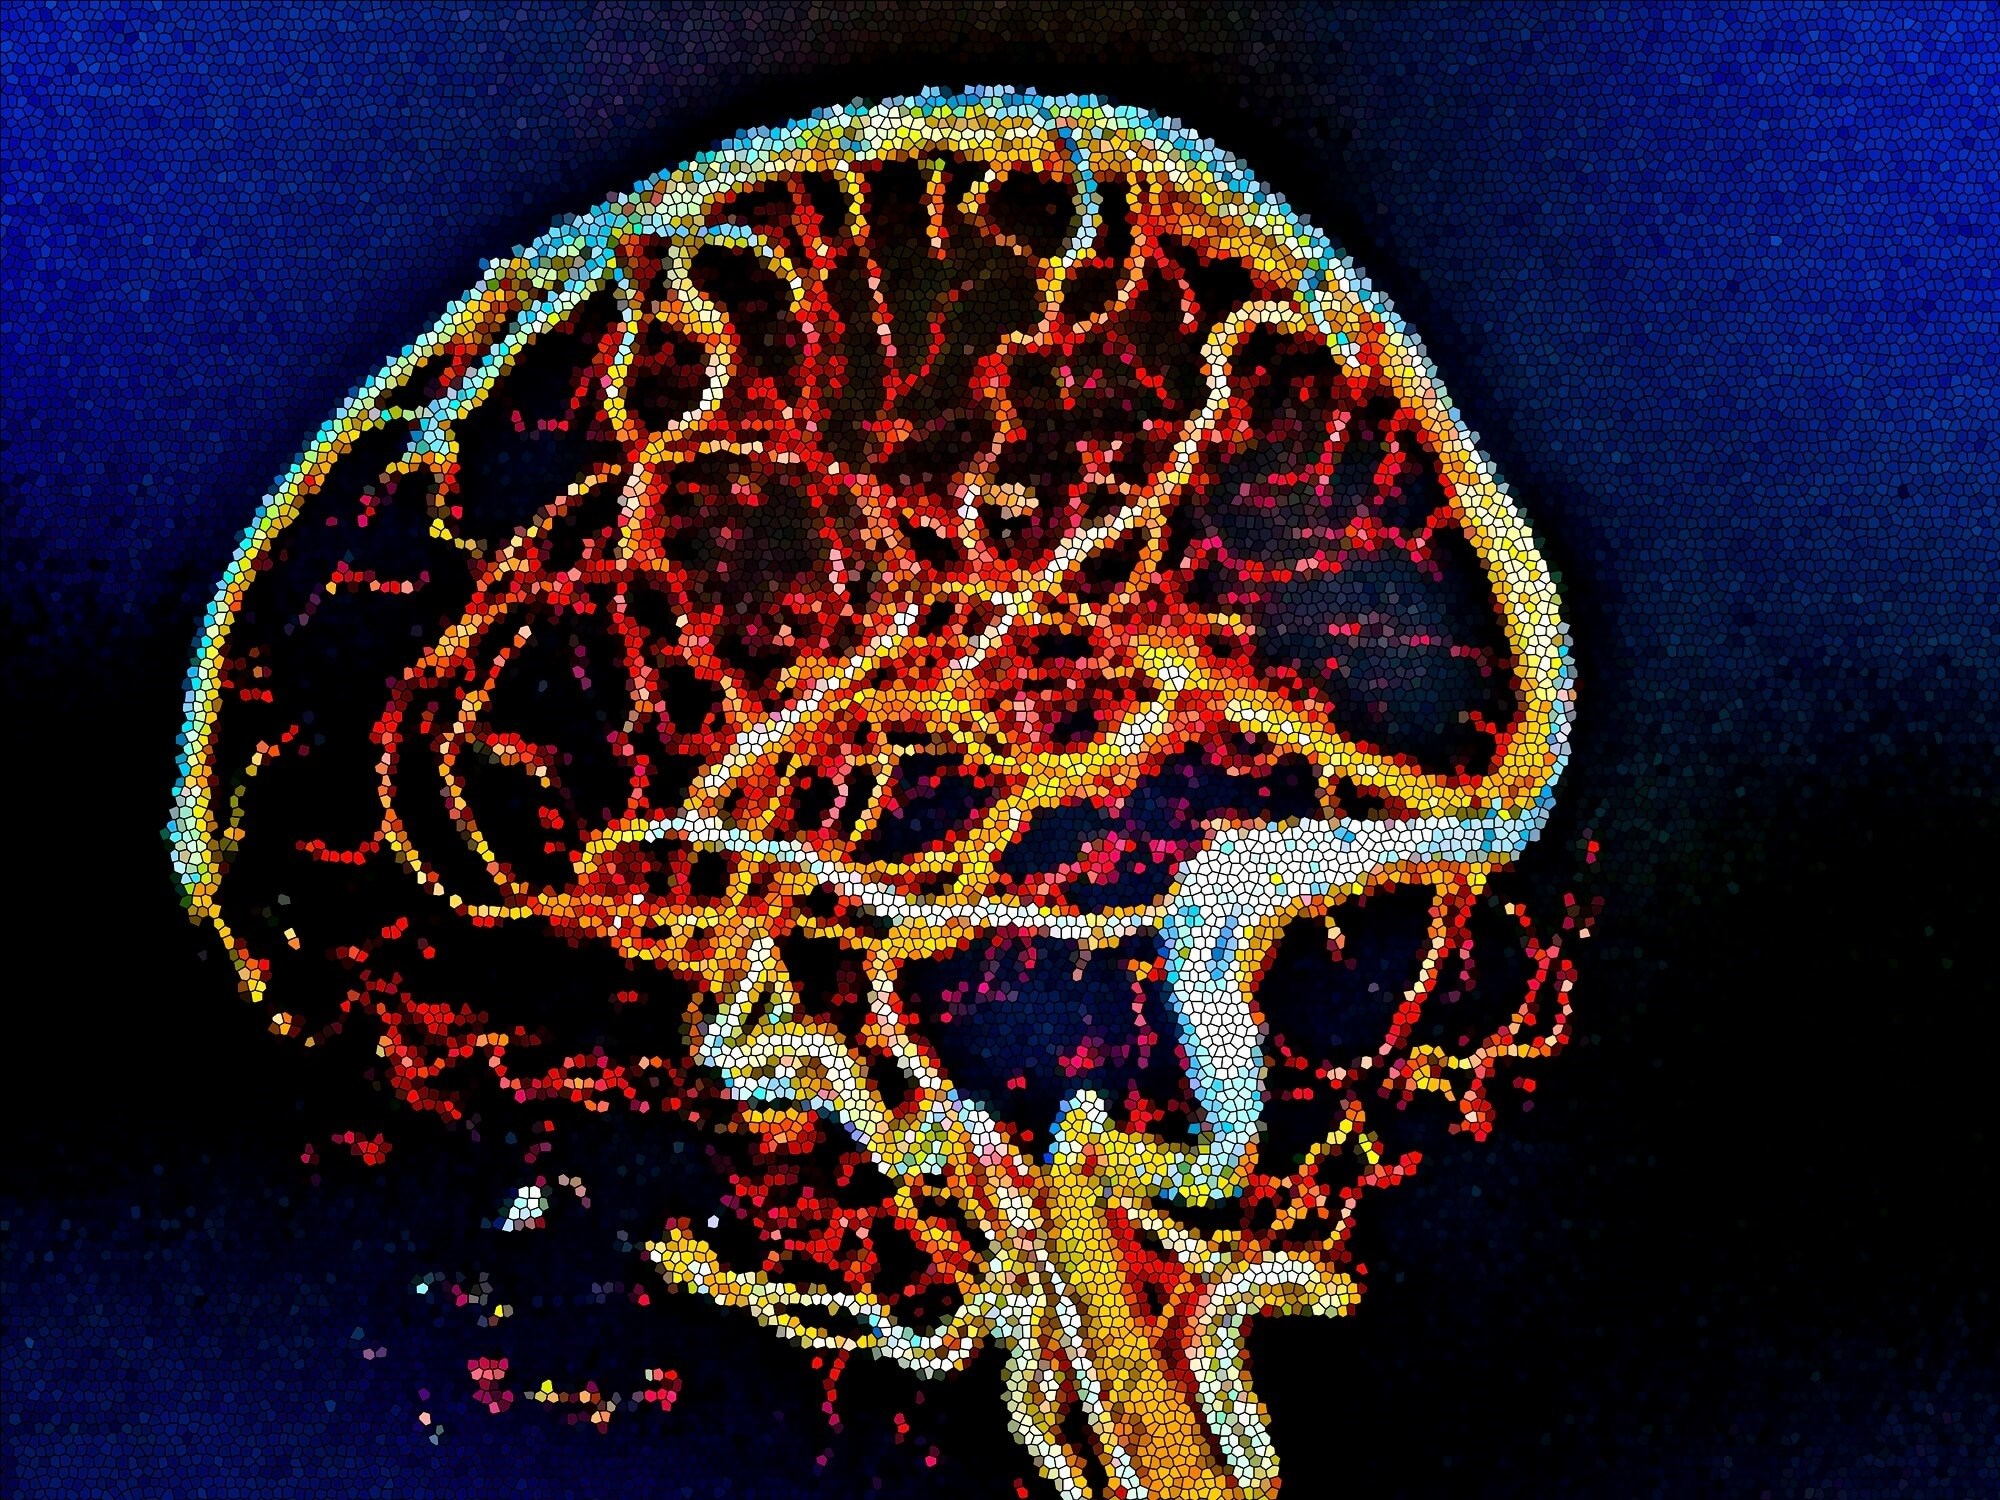 Investigators recommend additional treatment to improve stroke outcome in patients with infratentorial acute ischemic stroke when baseline NIHSS score is more than 6.